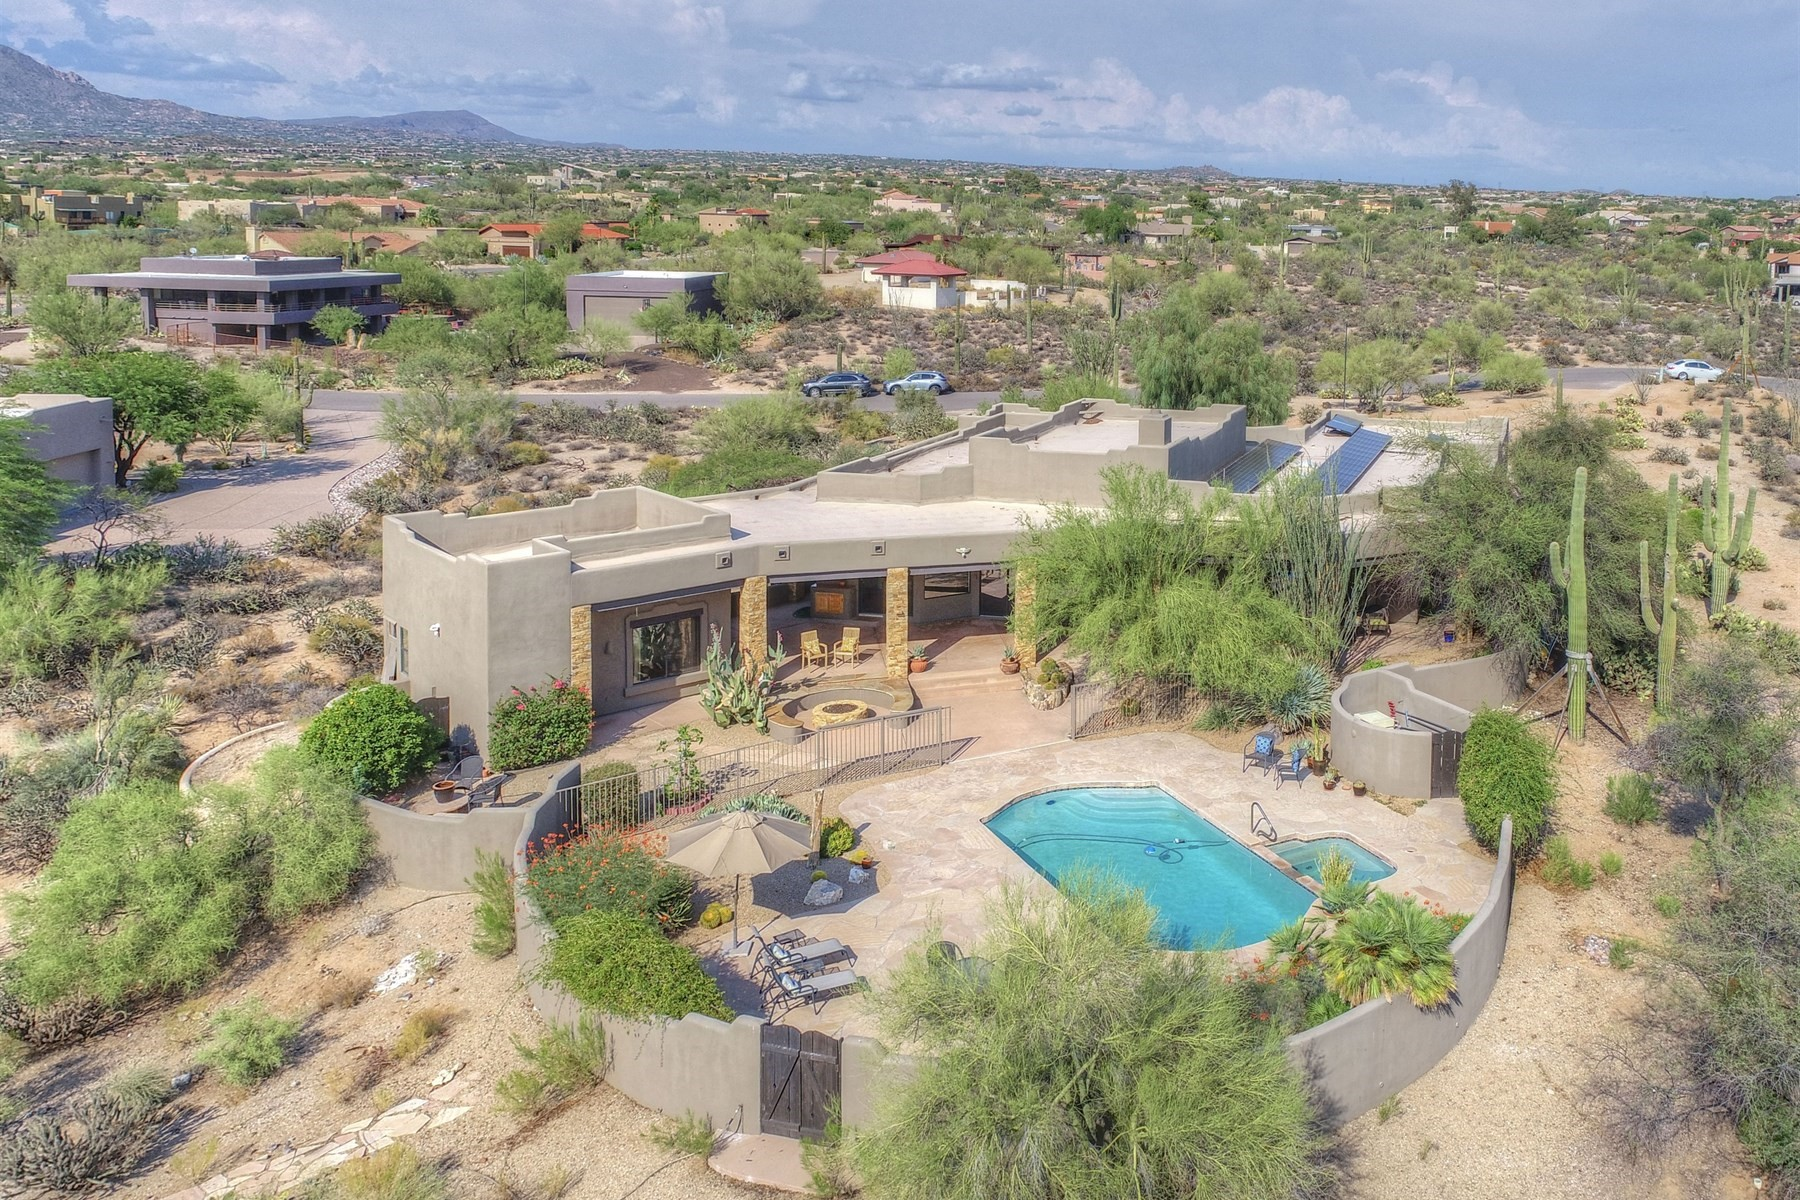 Single Family Home for Sale at Carefree Shadows 36400 N Placid Pl, Carefree, Arizona 85377 United States